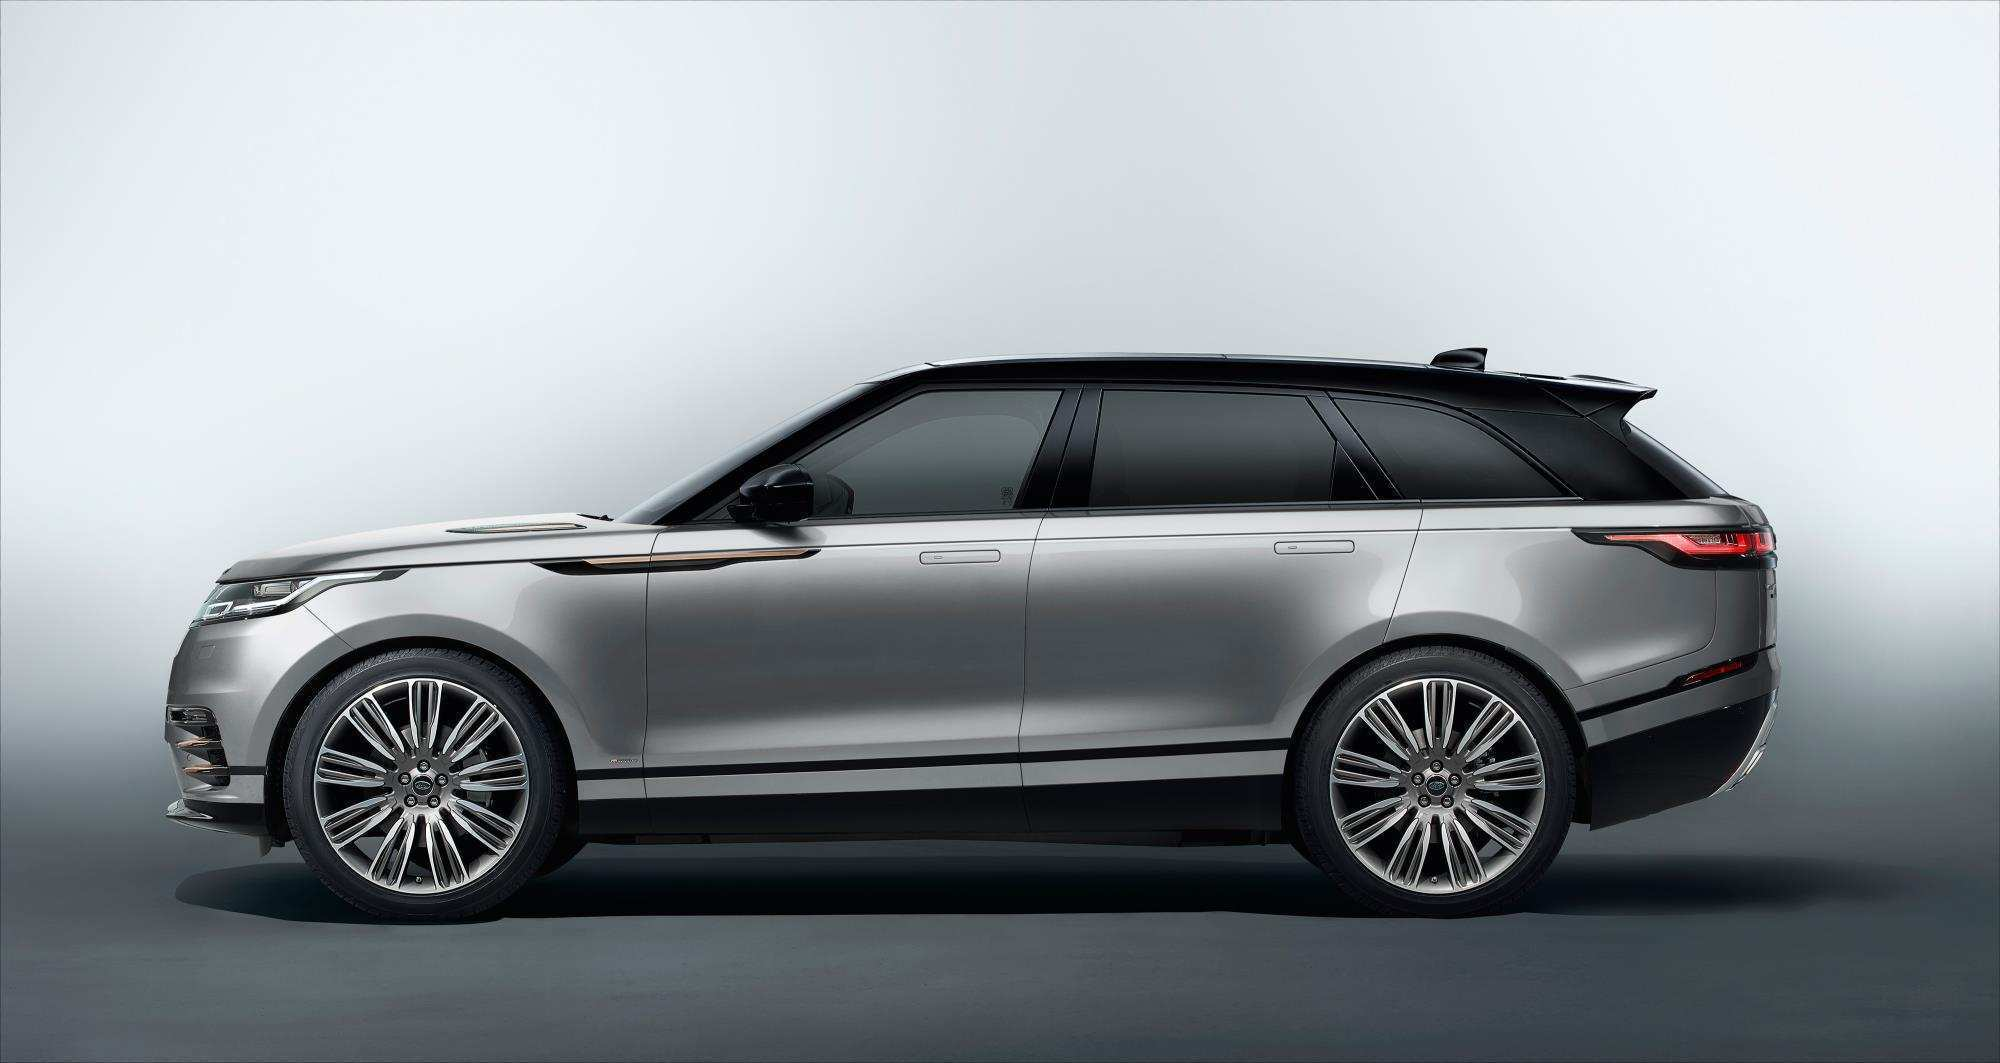 58 All New Land Rover Electric Cars 2020 First Drive by Land Rover Electric Cars 2020